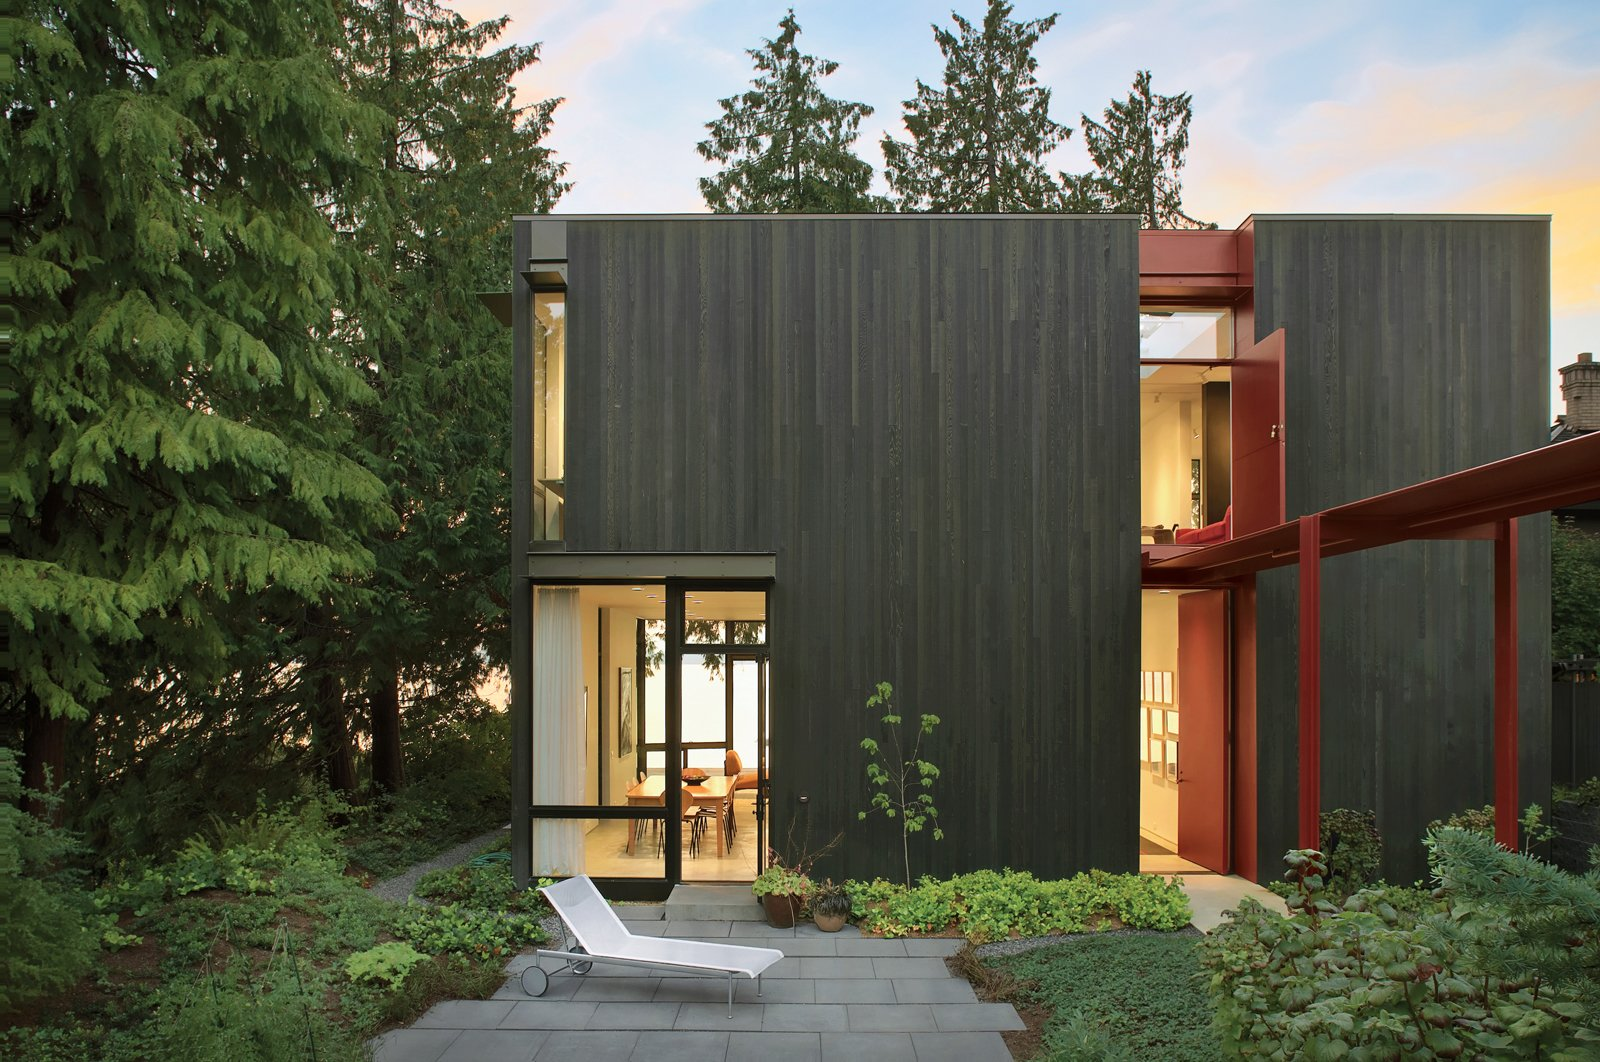 """A second-story Dutch door above the canopy ushers in sunlight and breezes. """"Light is really important in the Pacific Northwest because it's dark for most of the year,"""" says the resident. The cedar-clad facade is pierced with thoughtfully placed windows, which frame views and """"actively engage the idiosyncratic nature of the place,"""" says architect Tom Kundig.  House of Steel  by Diana Budds from Modern Steel Homes"""